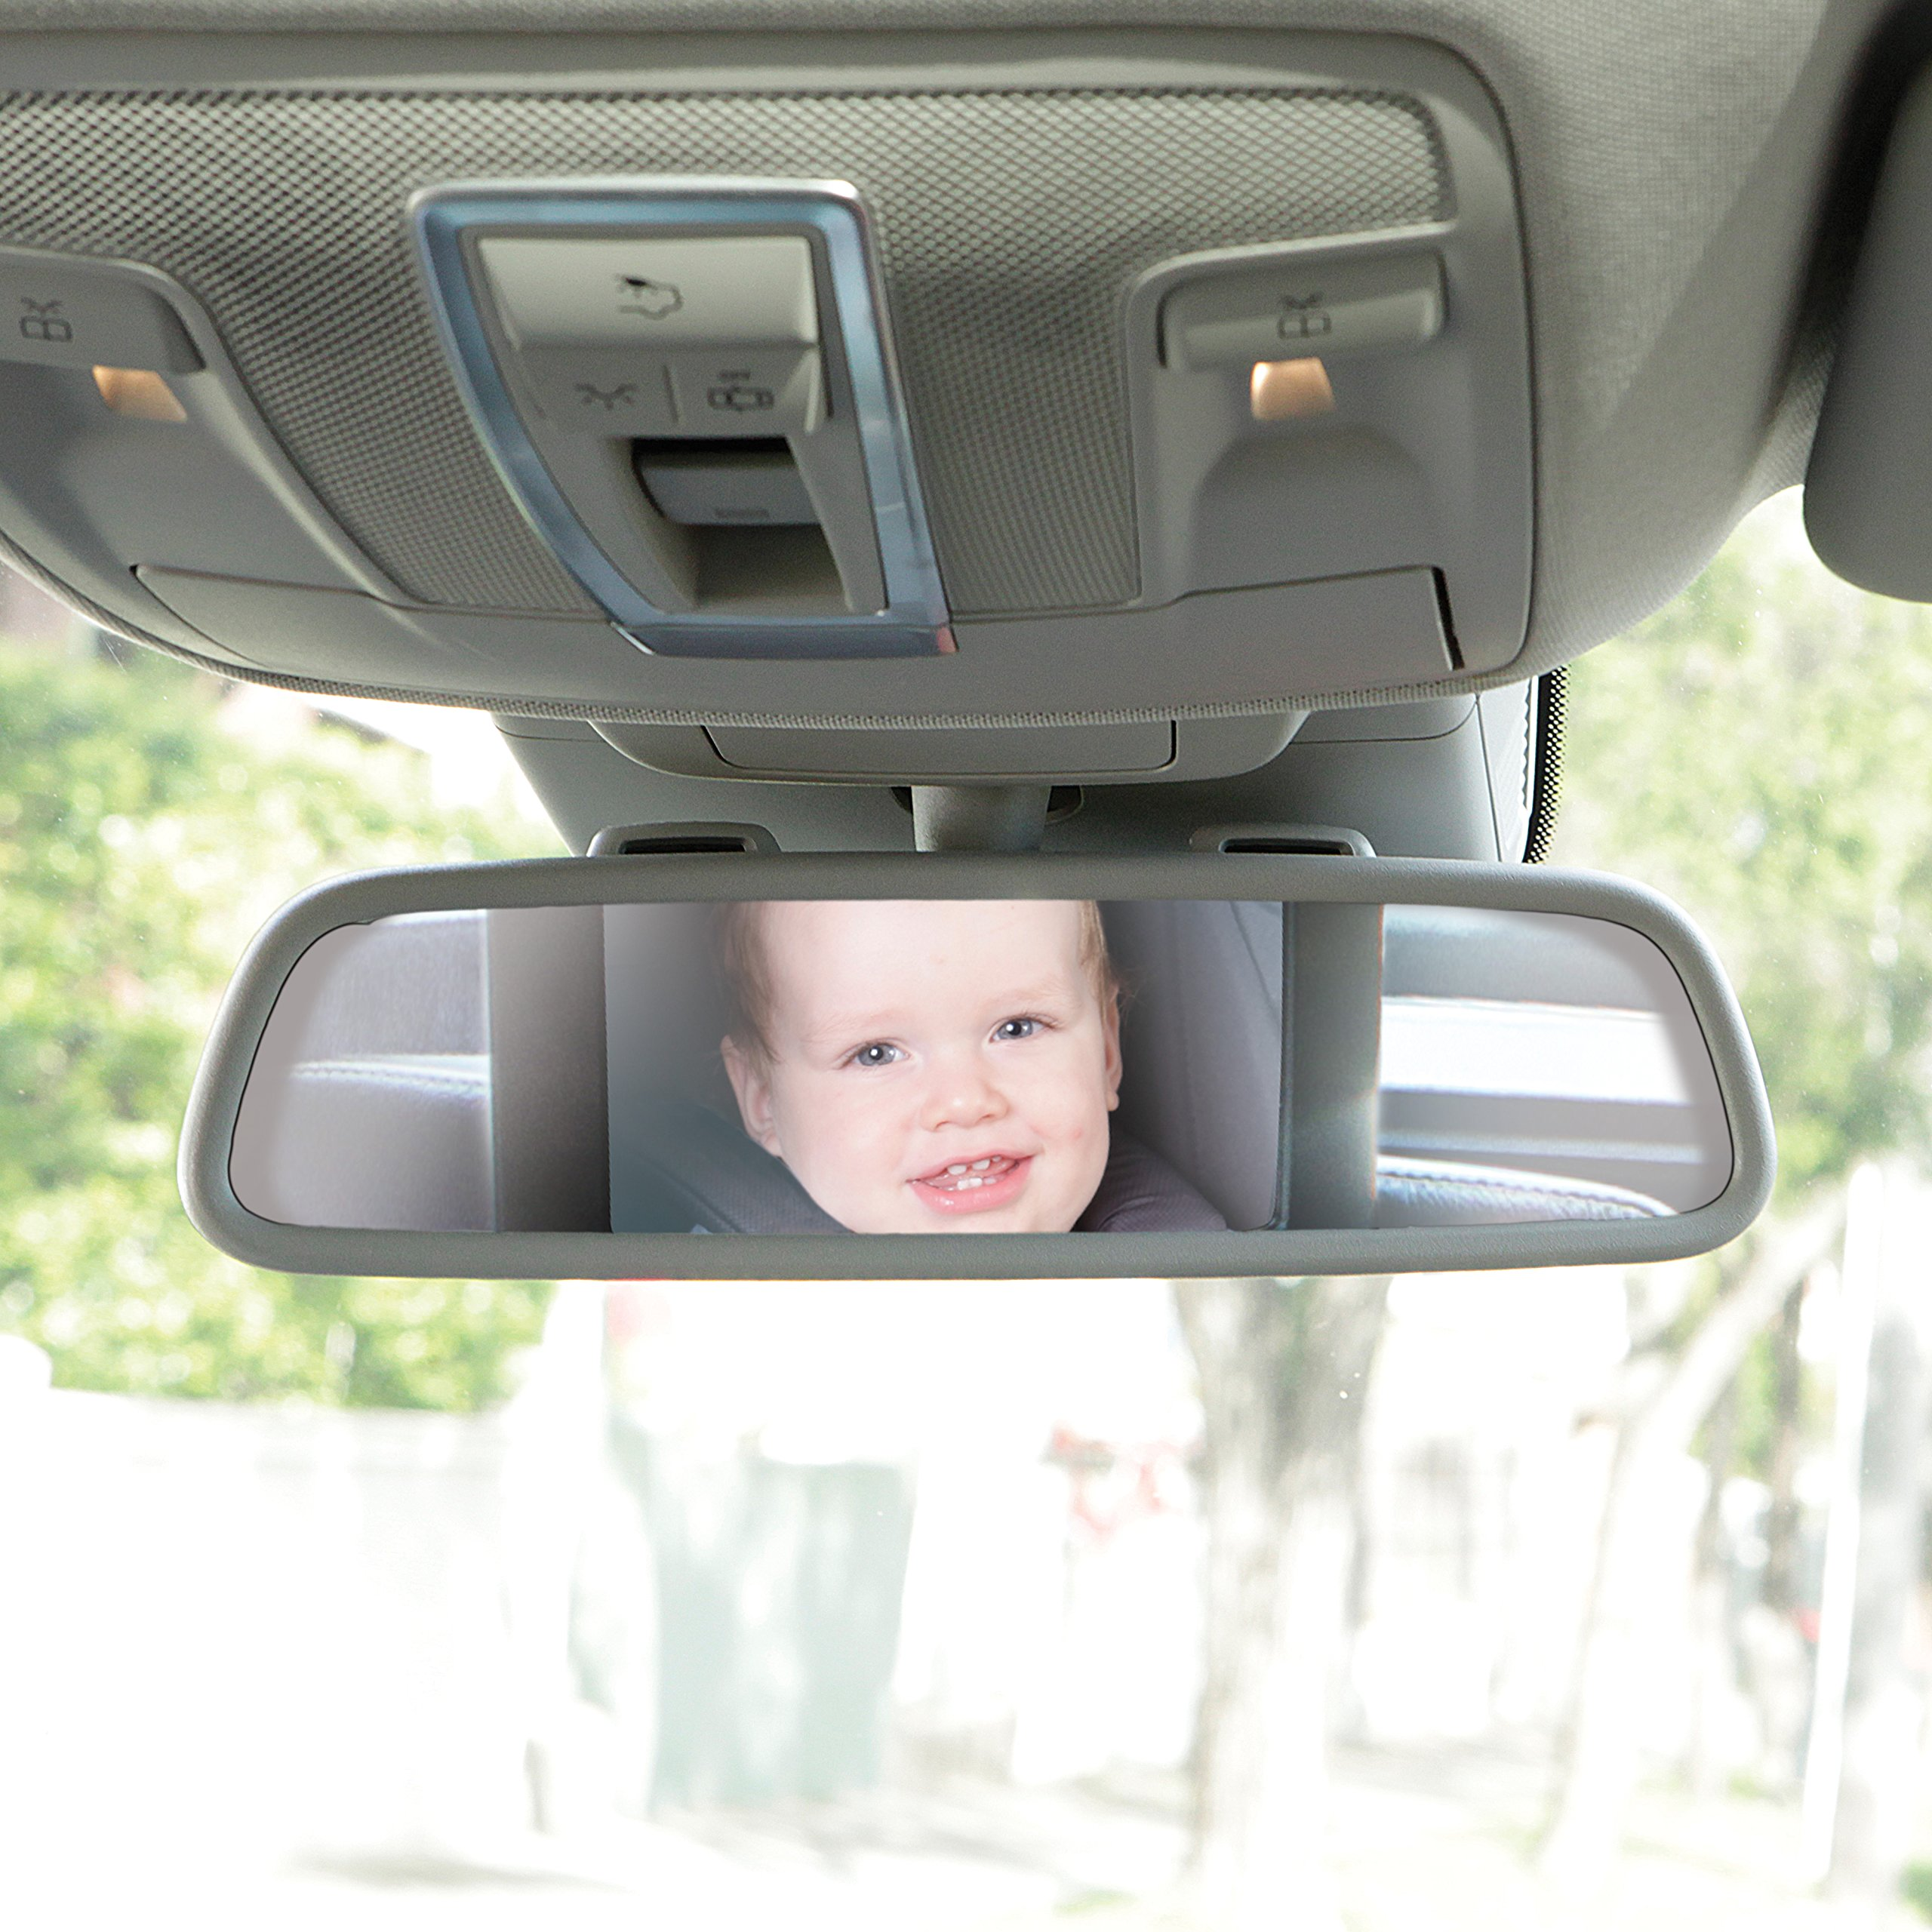 Dreambaby Adjustable Backseat Mirror (1 Pack) by Dreambaby (Image #8)